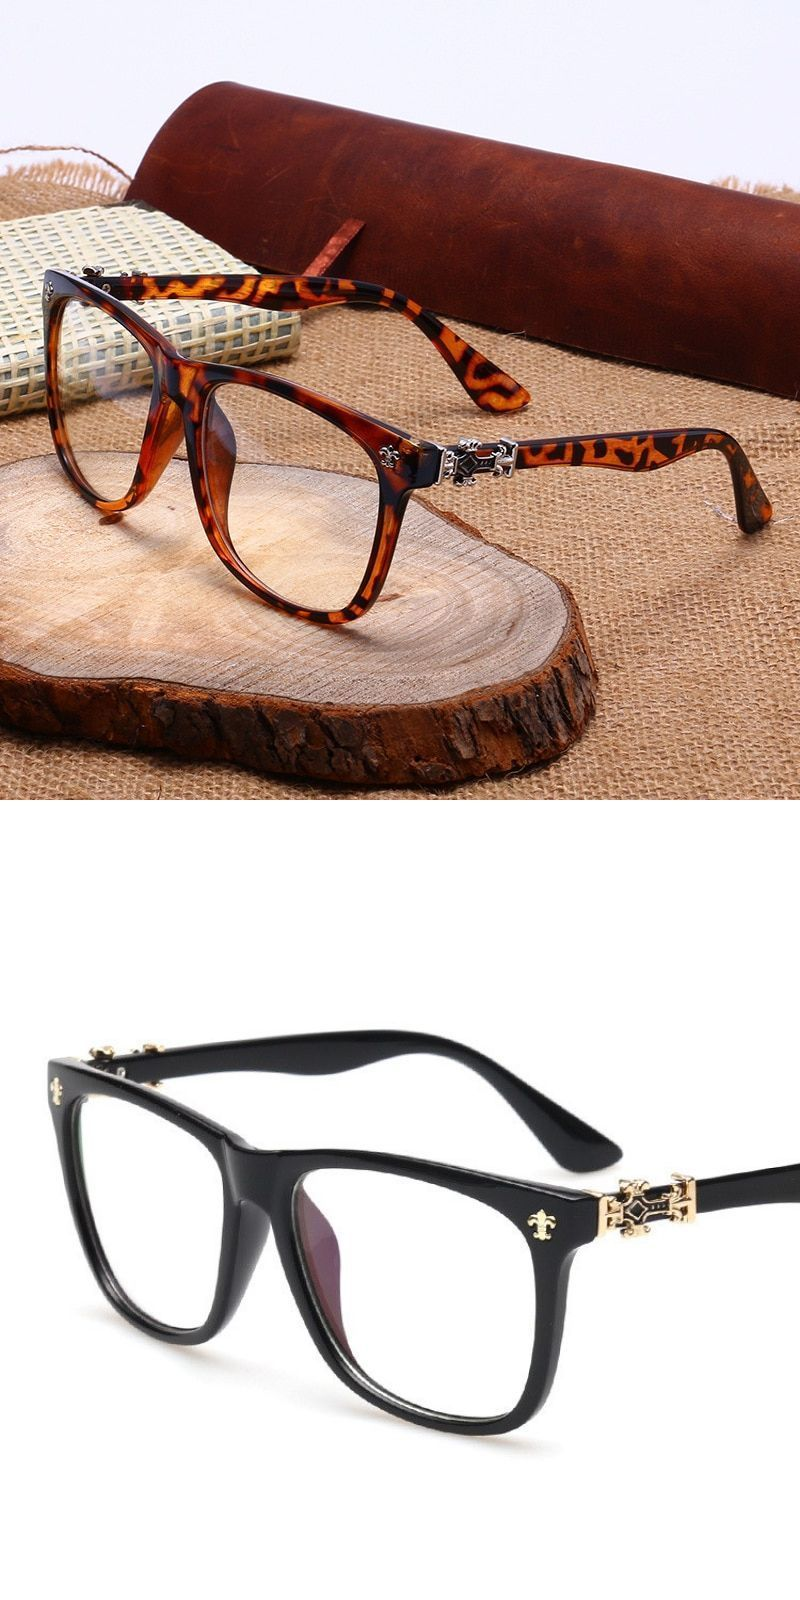 34b45990d65 Vintage eyeglass frames women men designer eyewear frame optical eye glasses  frame can match photochromic lenses  frames  eyewear  accessories  women ...